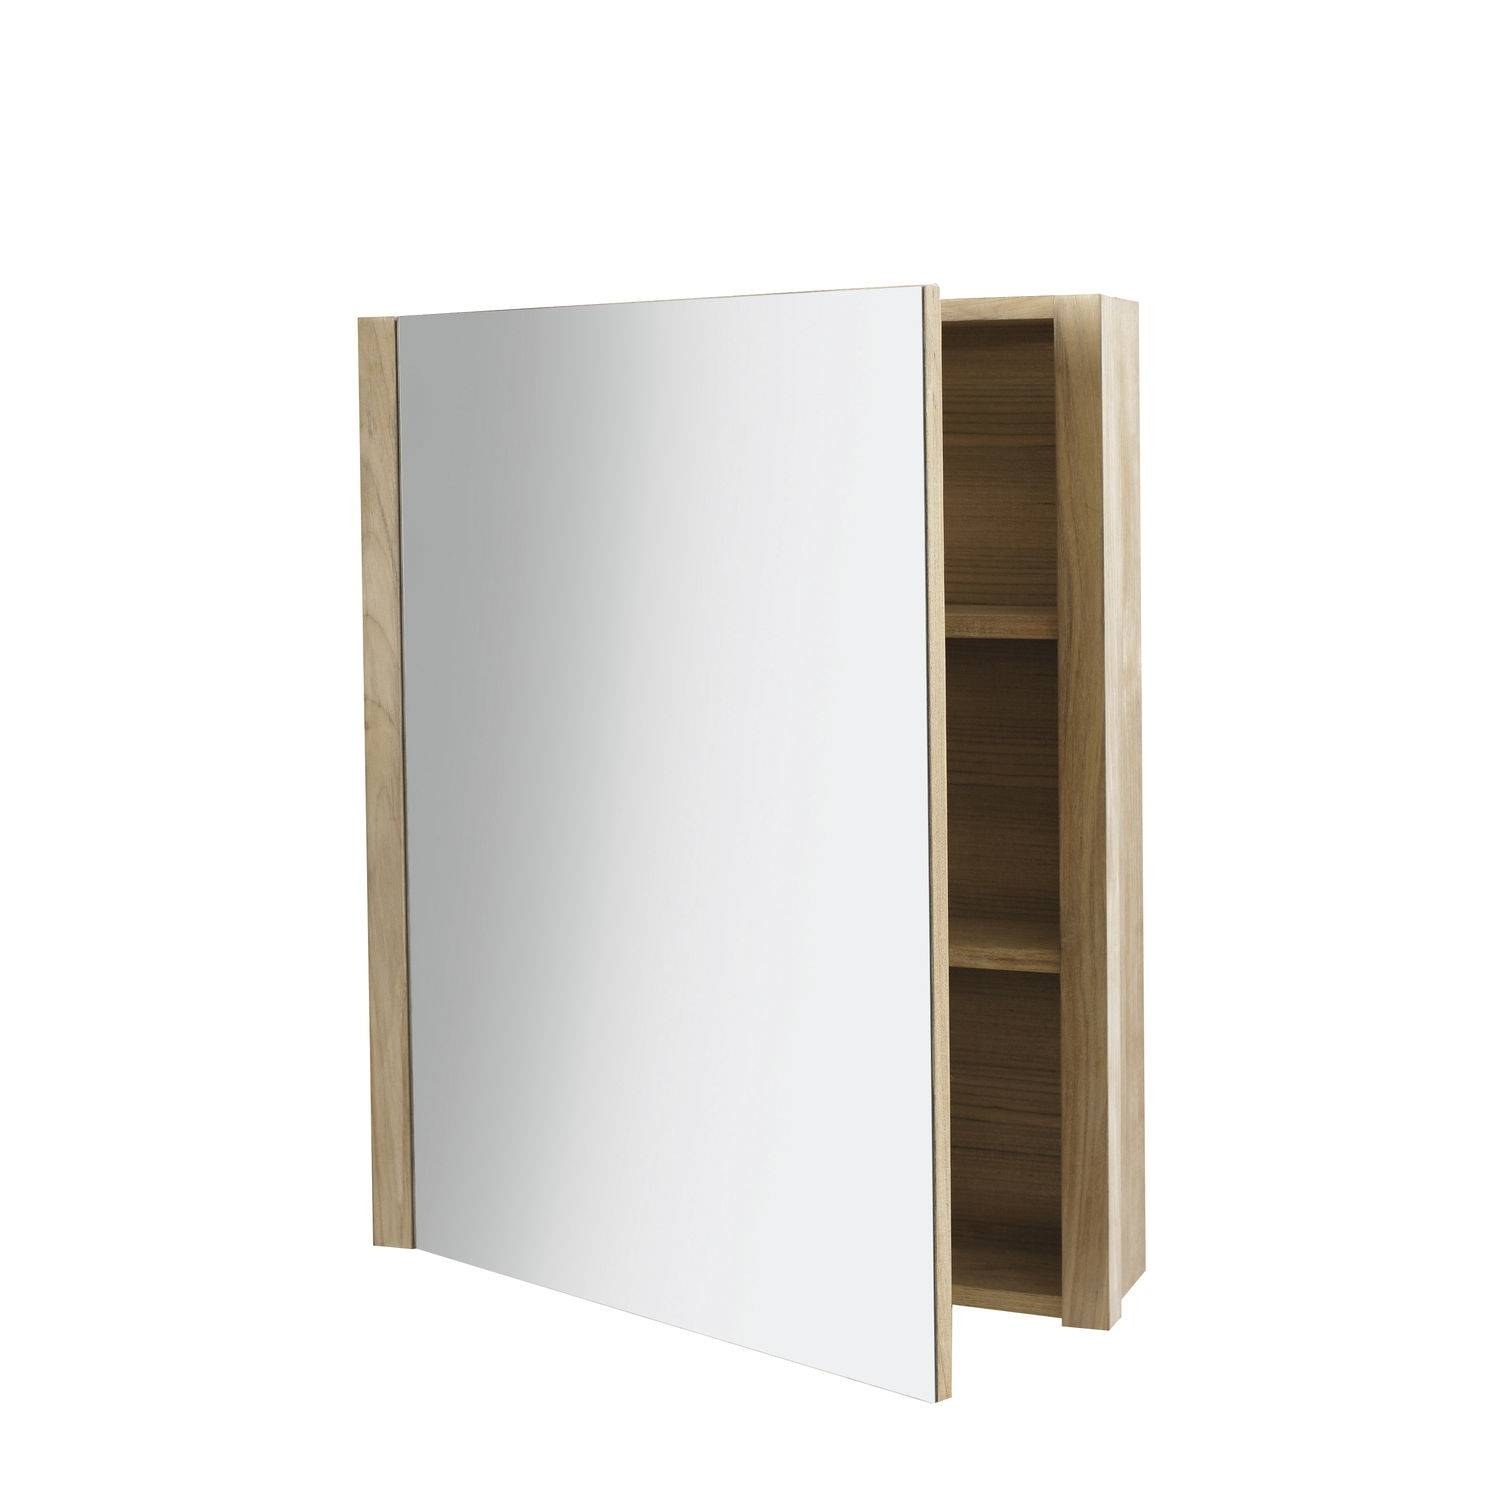 Home Decor : Mirrored Bathroom Wall Cabinets Wall Mirror For with regard to Slim Wall Mirrors (Image 7 of 15)